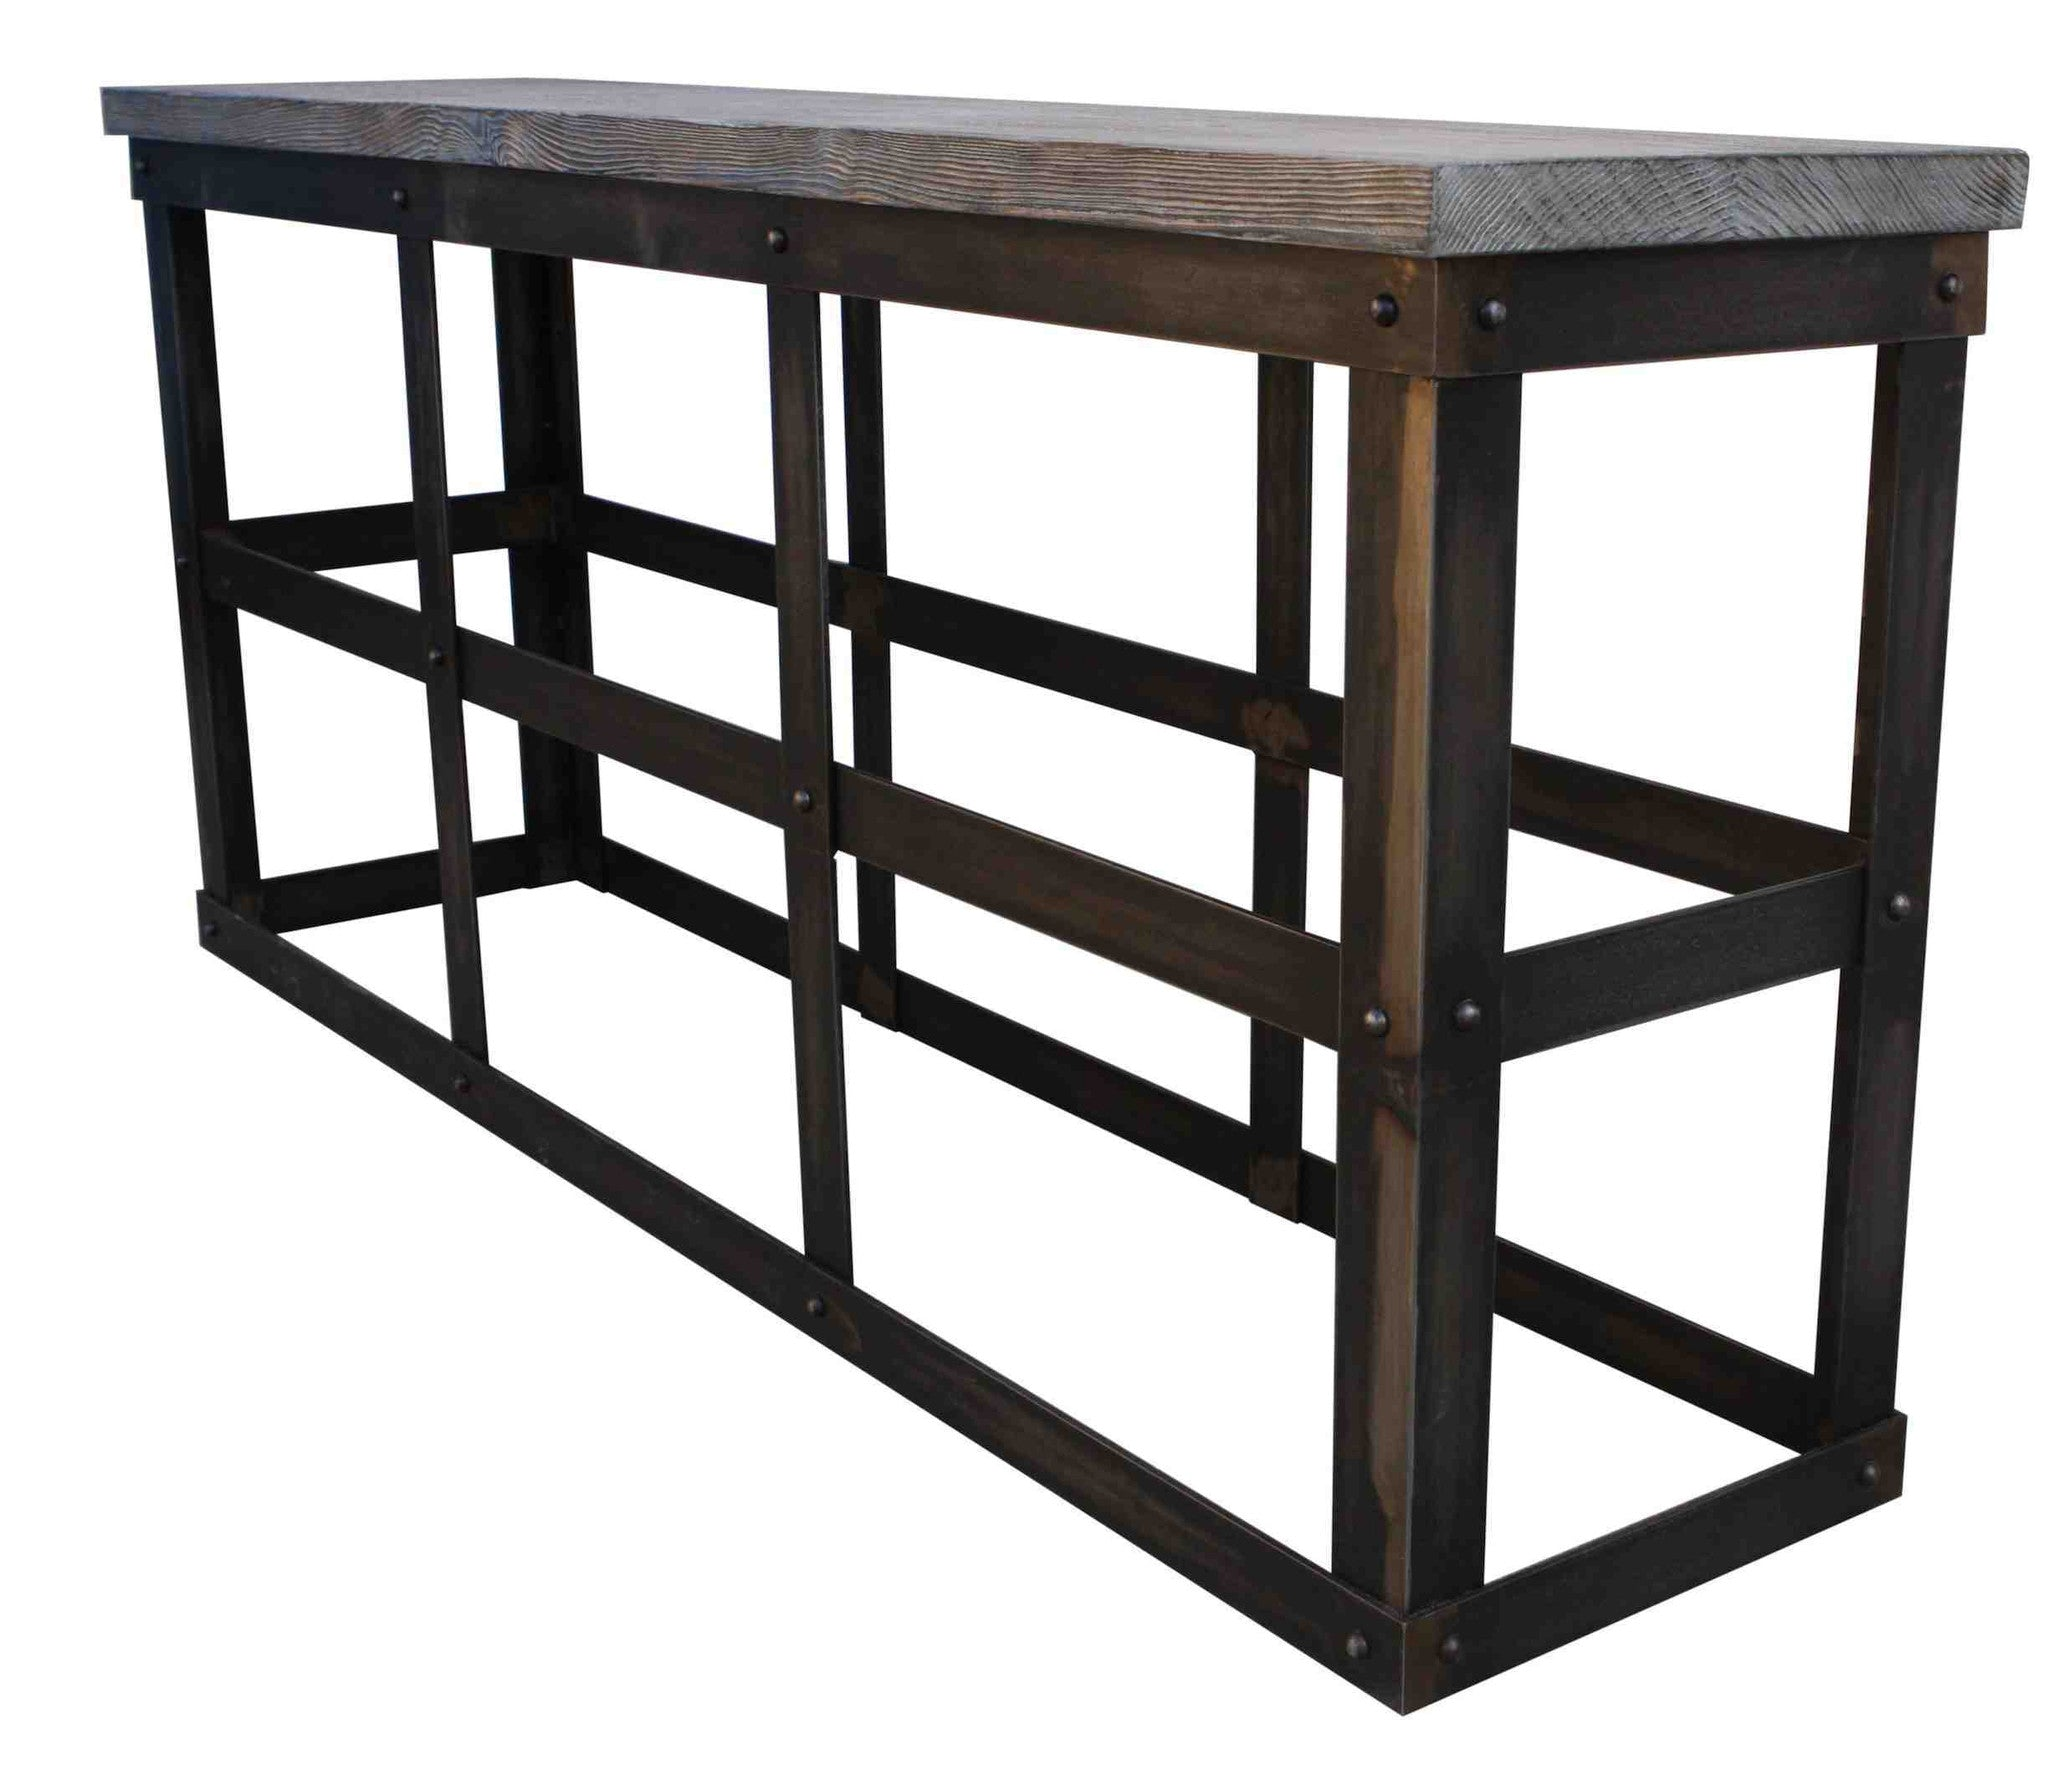 Custom Reclaimed Wood Modern Industrial Bookcase for Living Room